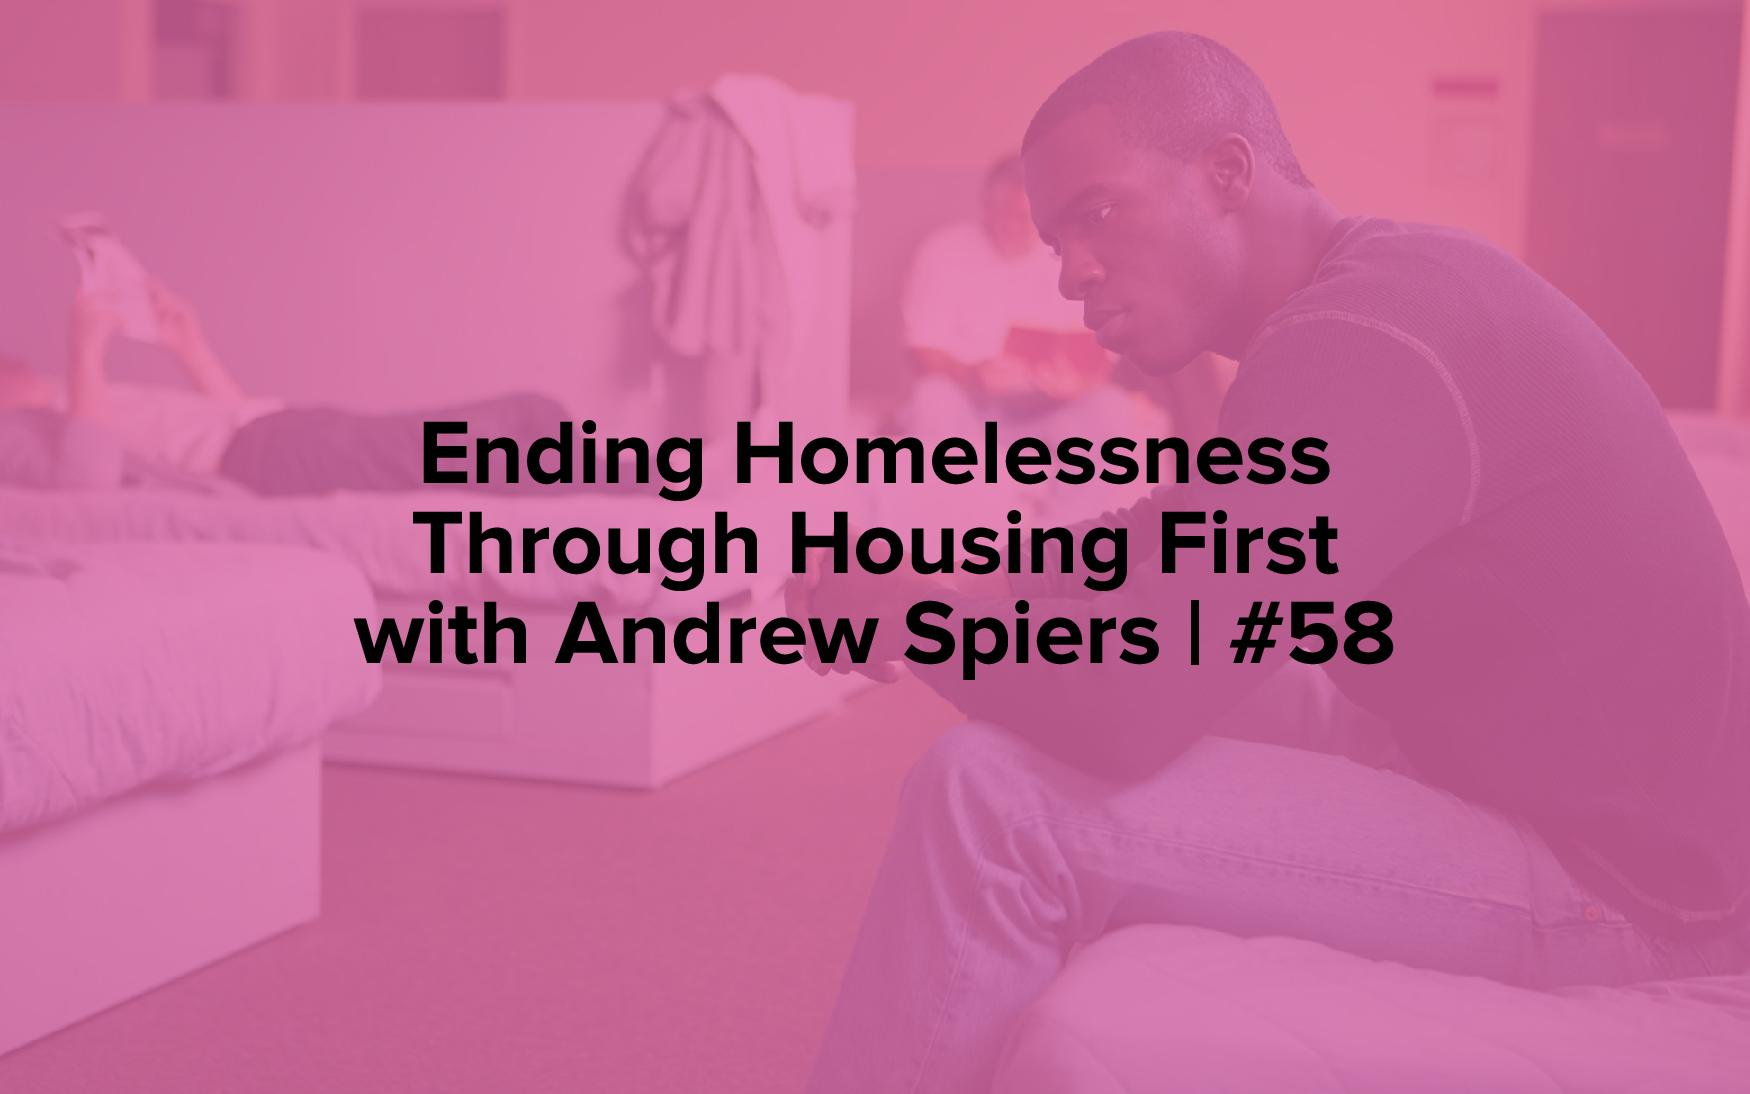 Ending Homelessness Through Housing First with Andrew Spiers | #58